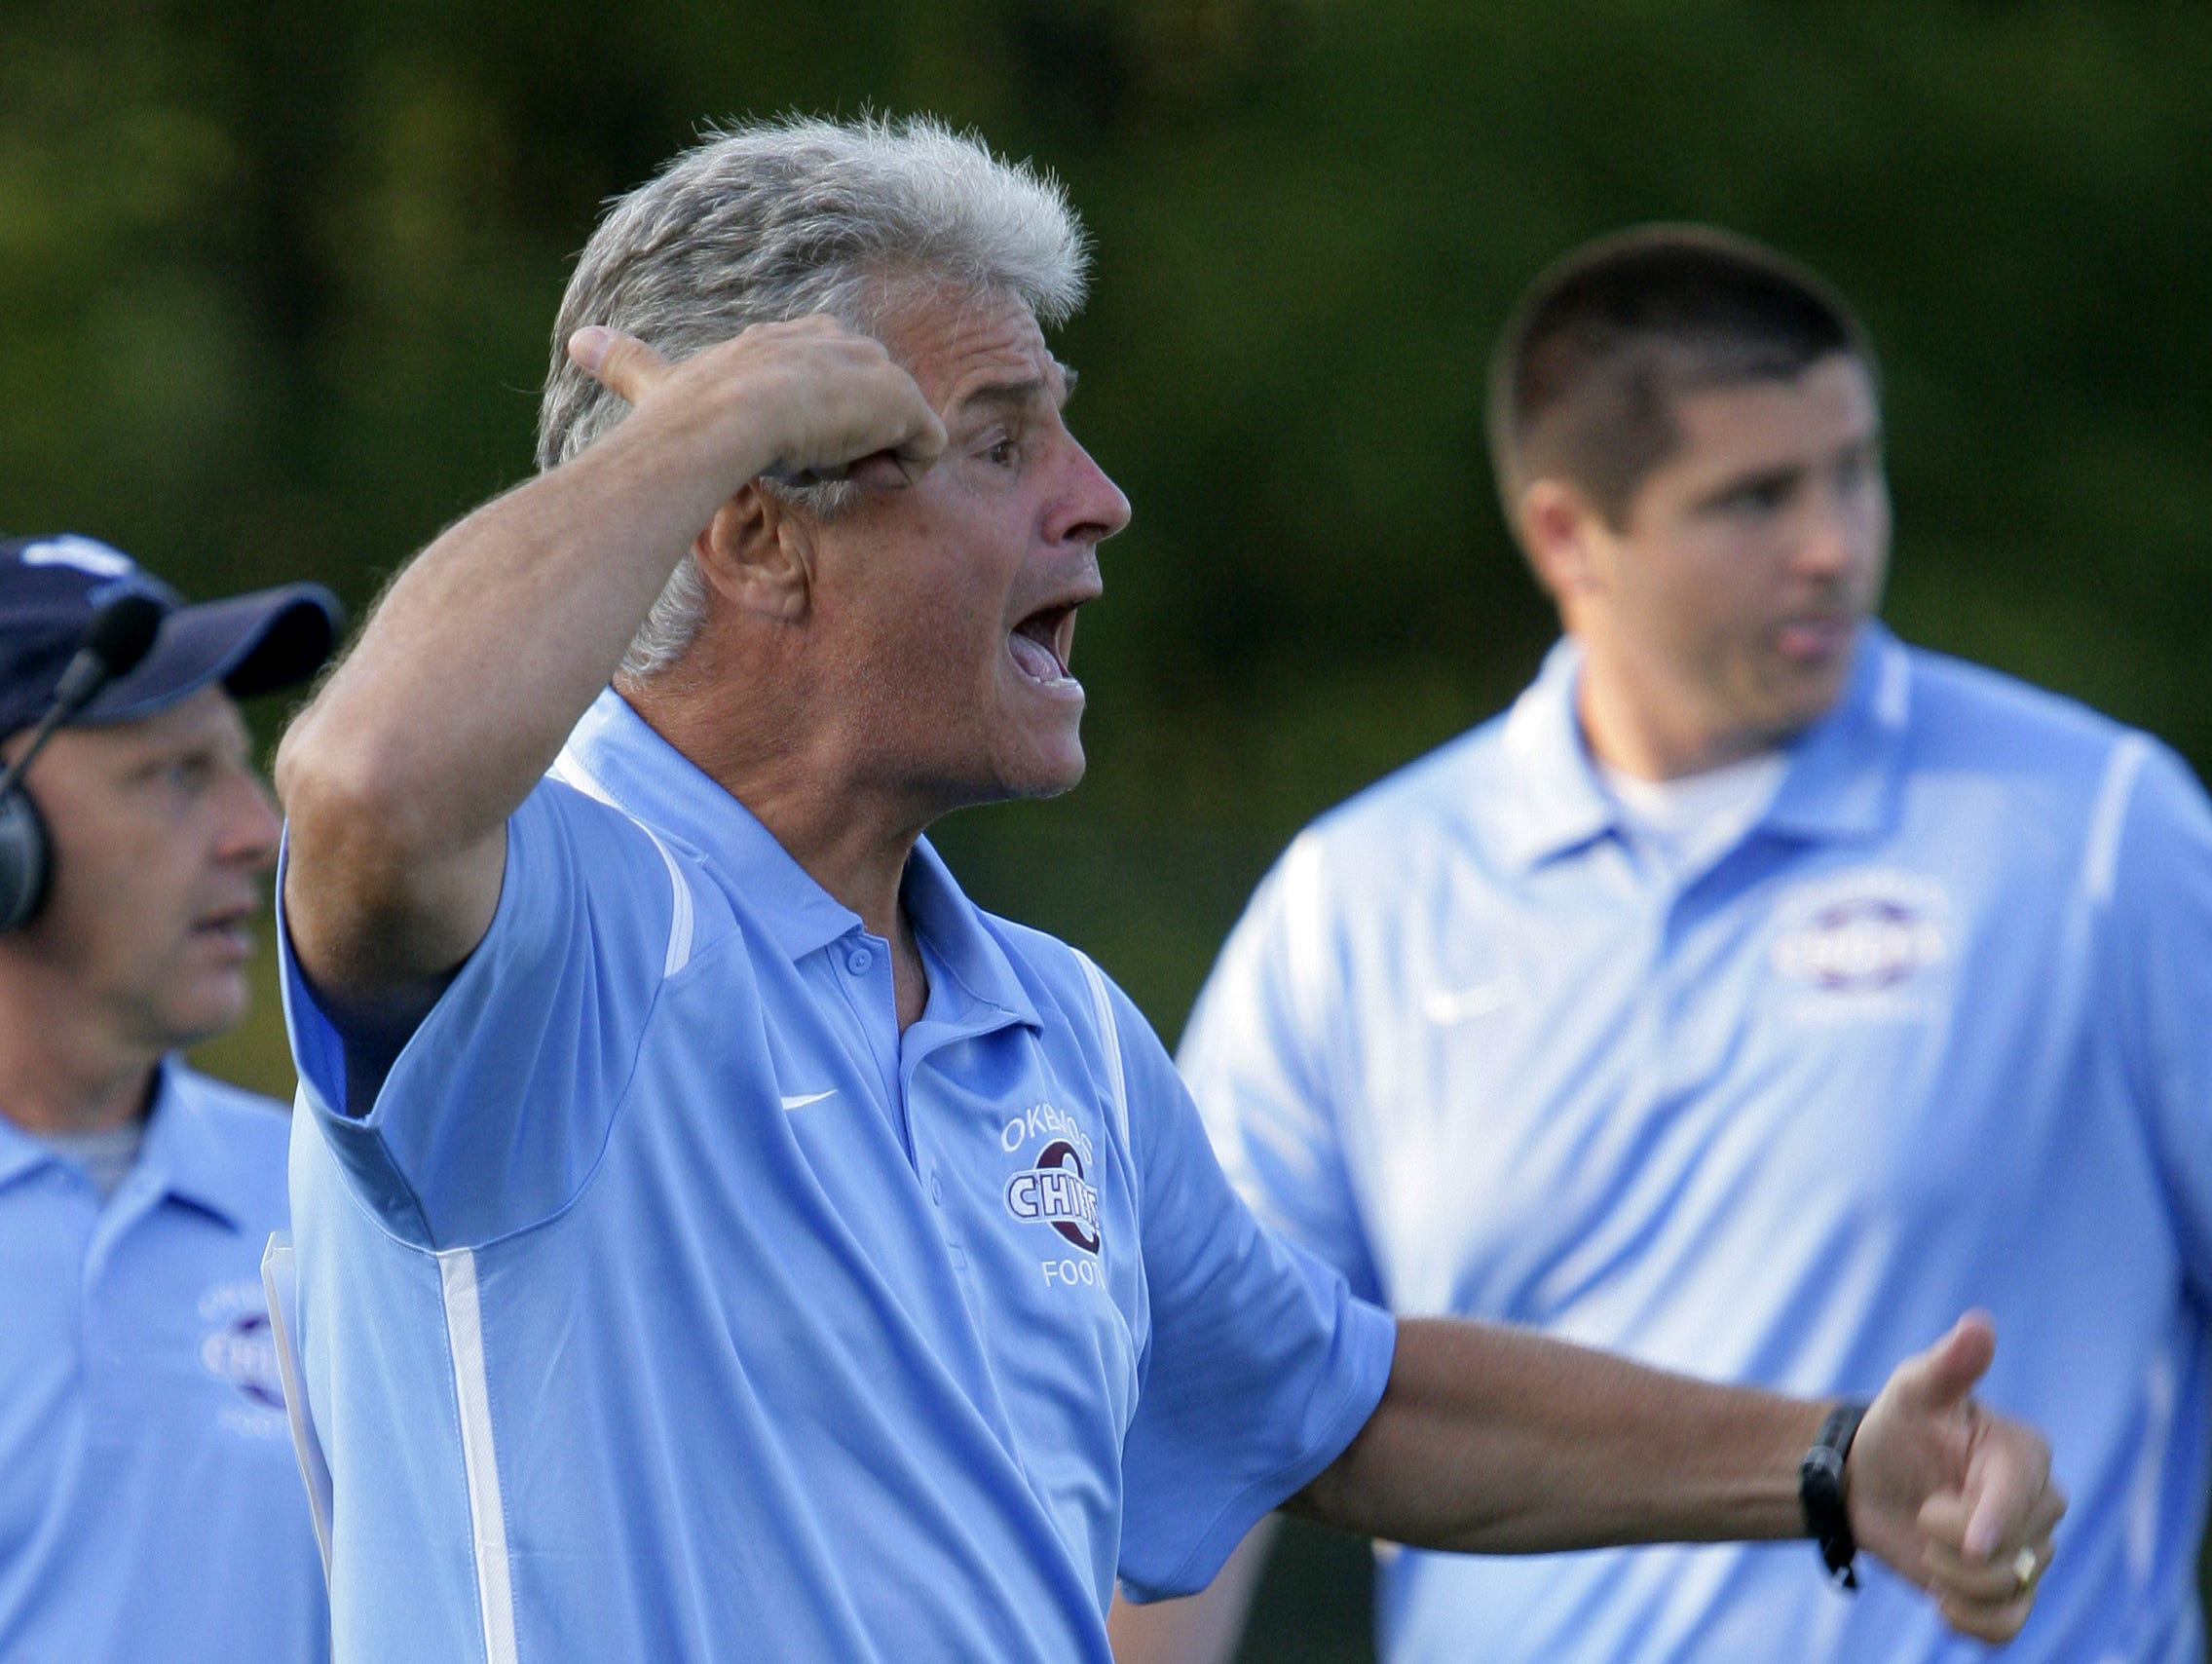 Jack Wallace picked up the 200th win of his coaching career in Okemos' victory over Eastern on Friday.